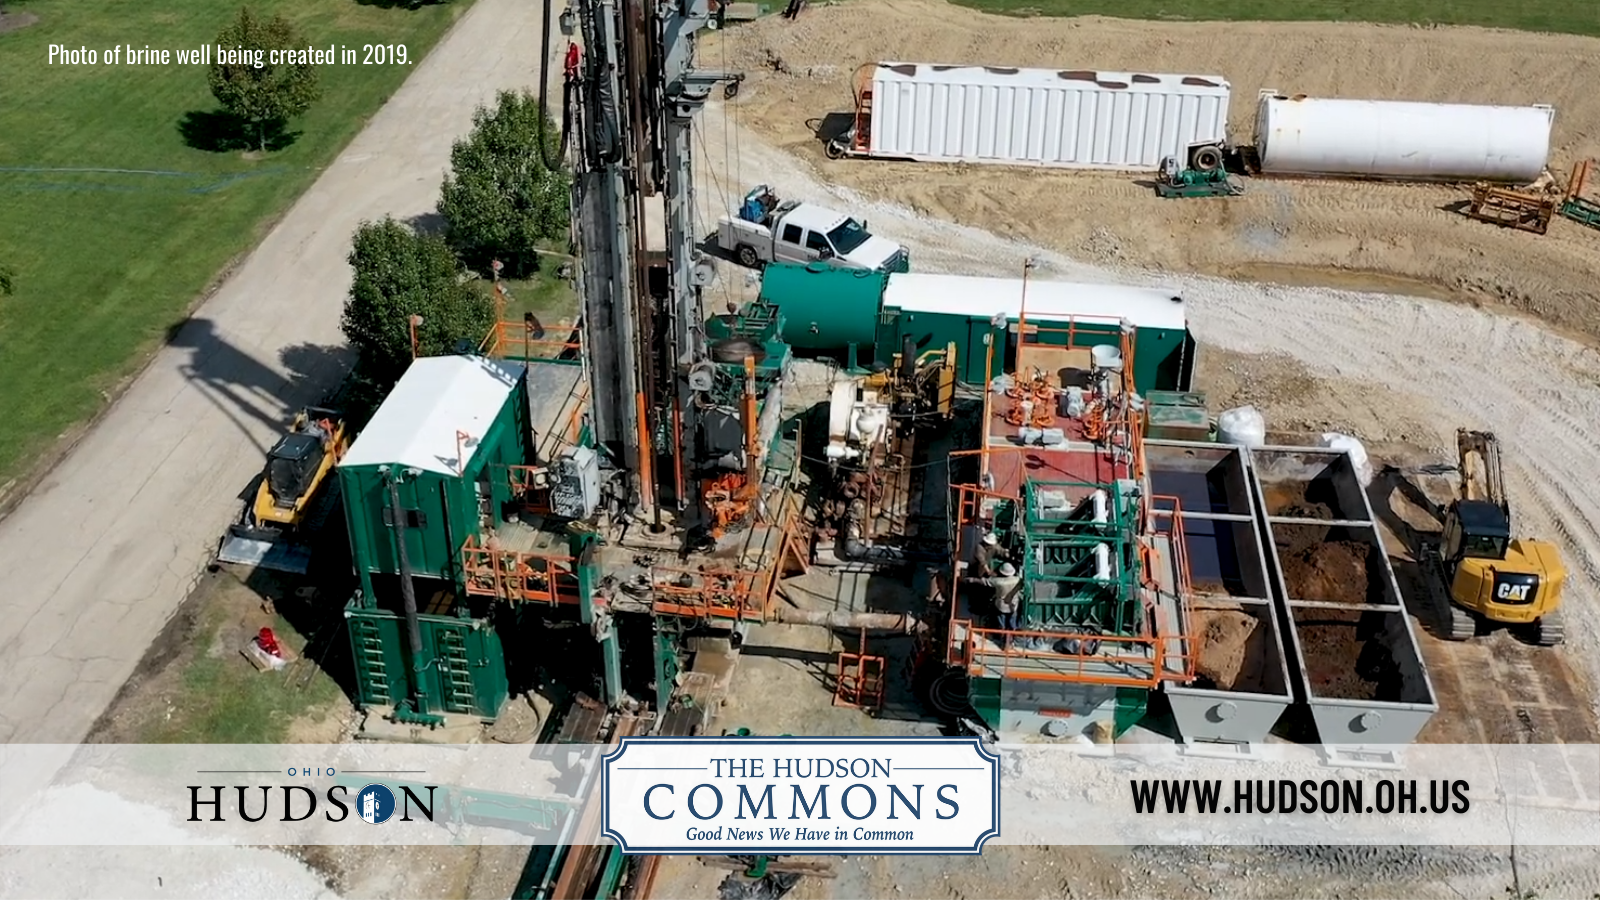 Hudson Commons Brine Well